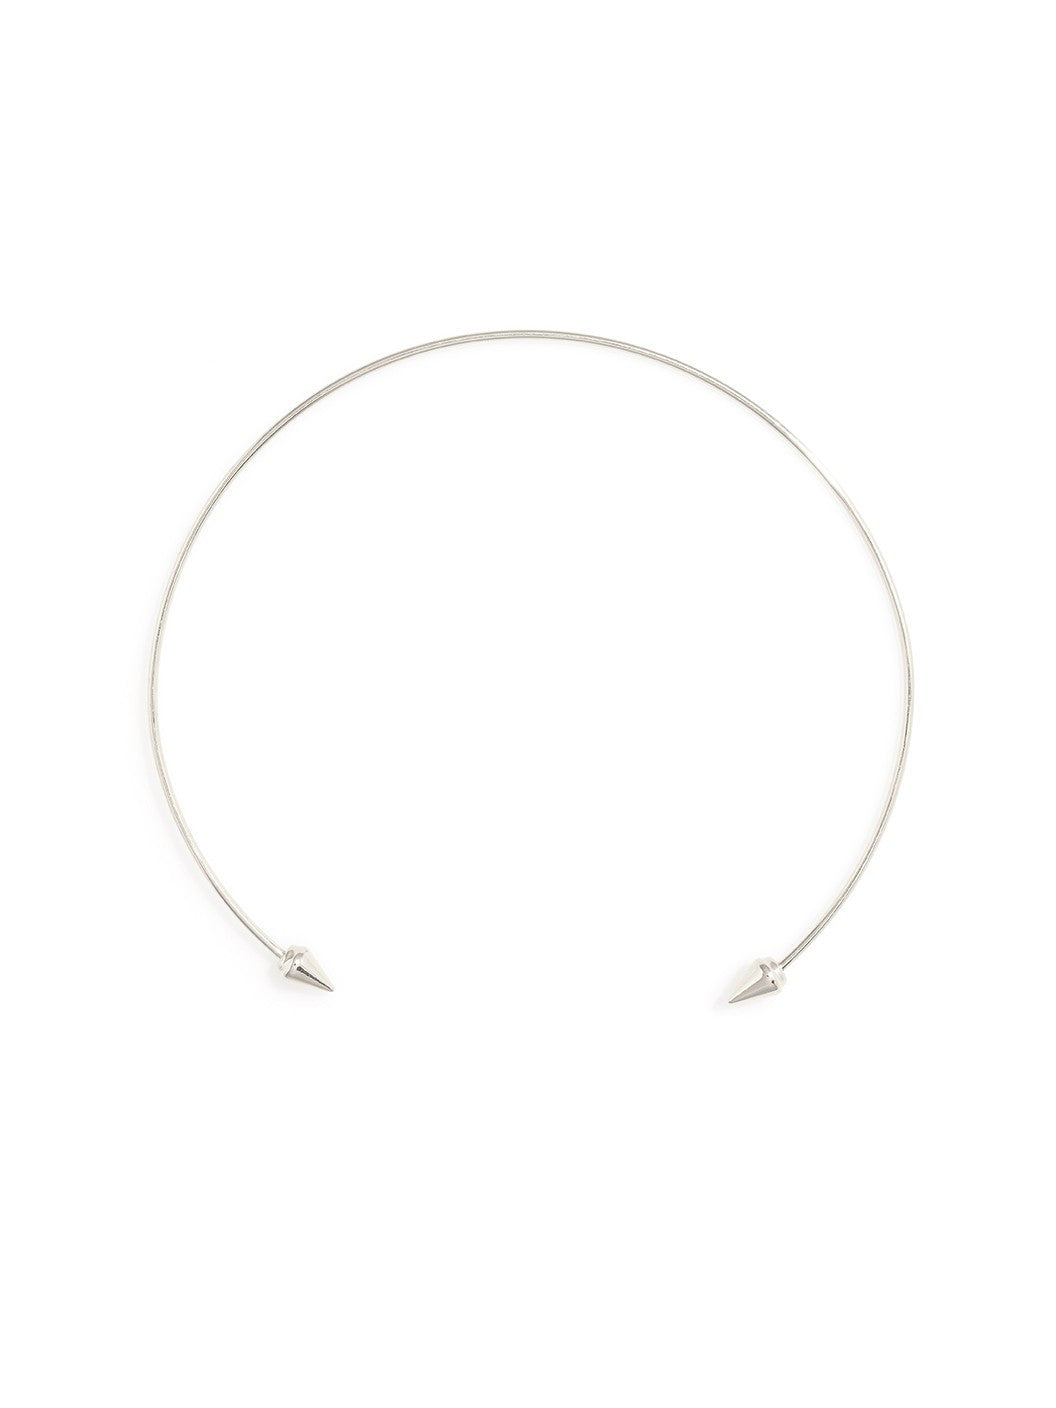 Beatrice Sterling Silver Choker Necklace - Micha Store  - 1